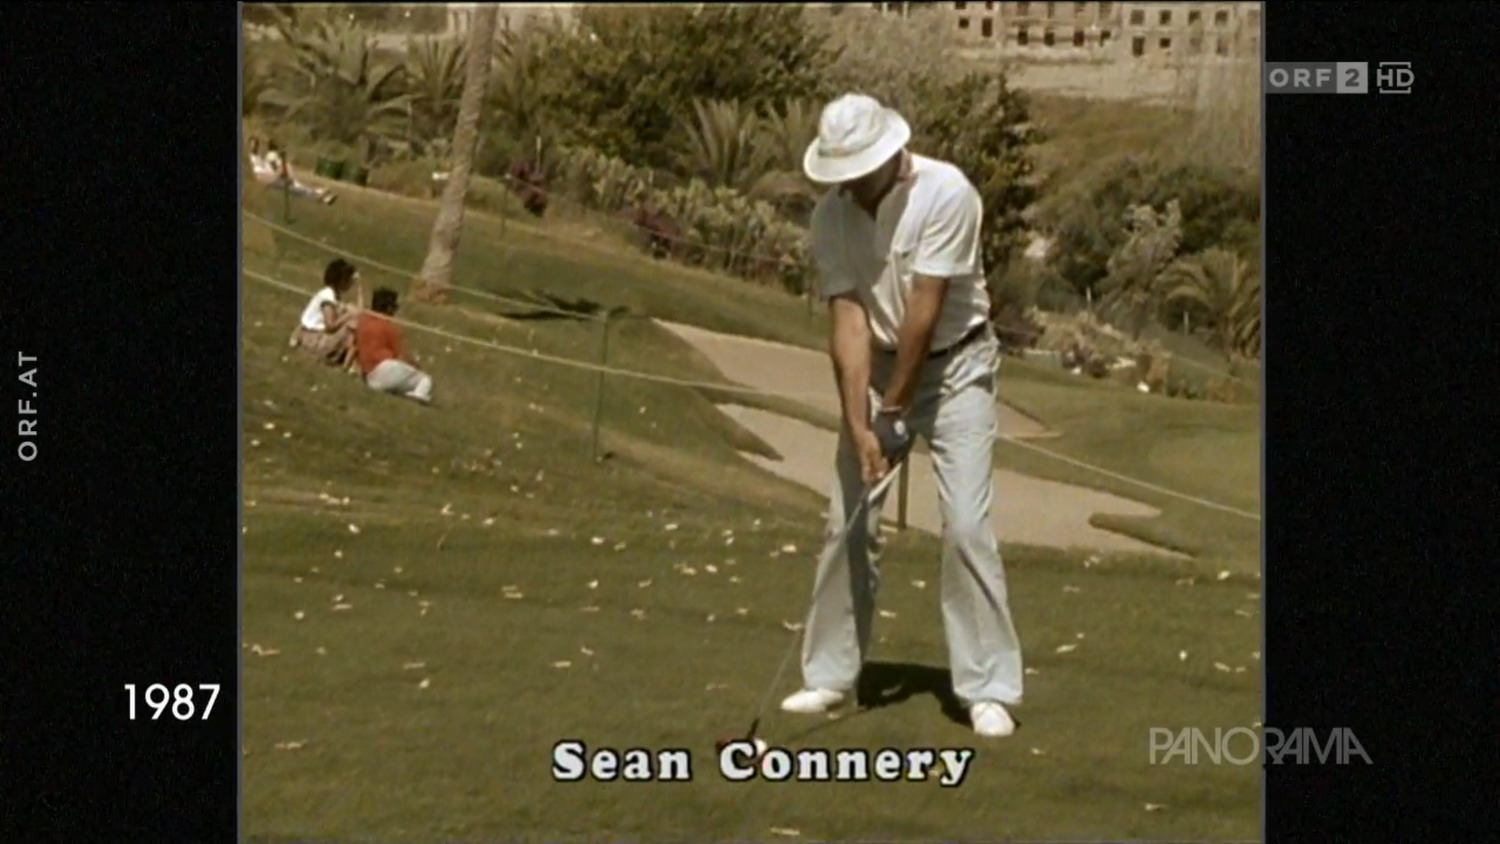 Sean Connery in Episode dated 26 June 1987 (1987)